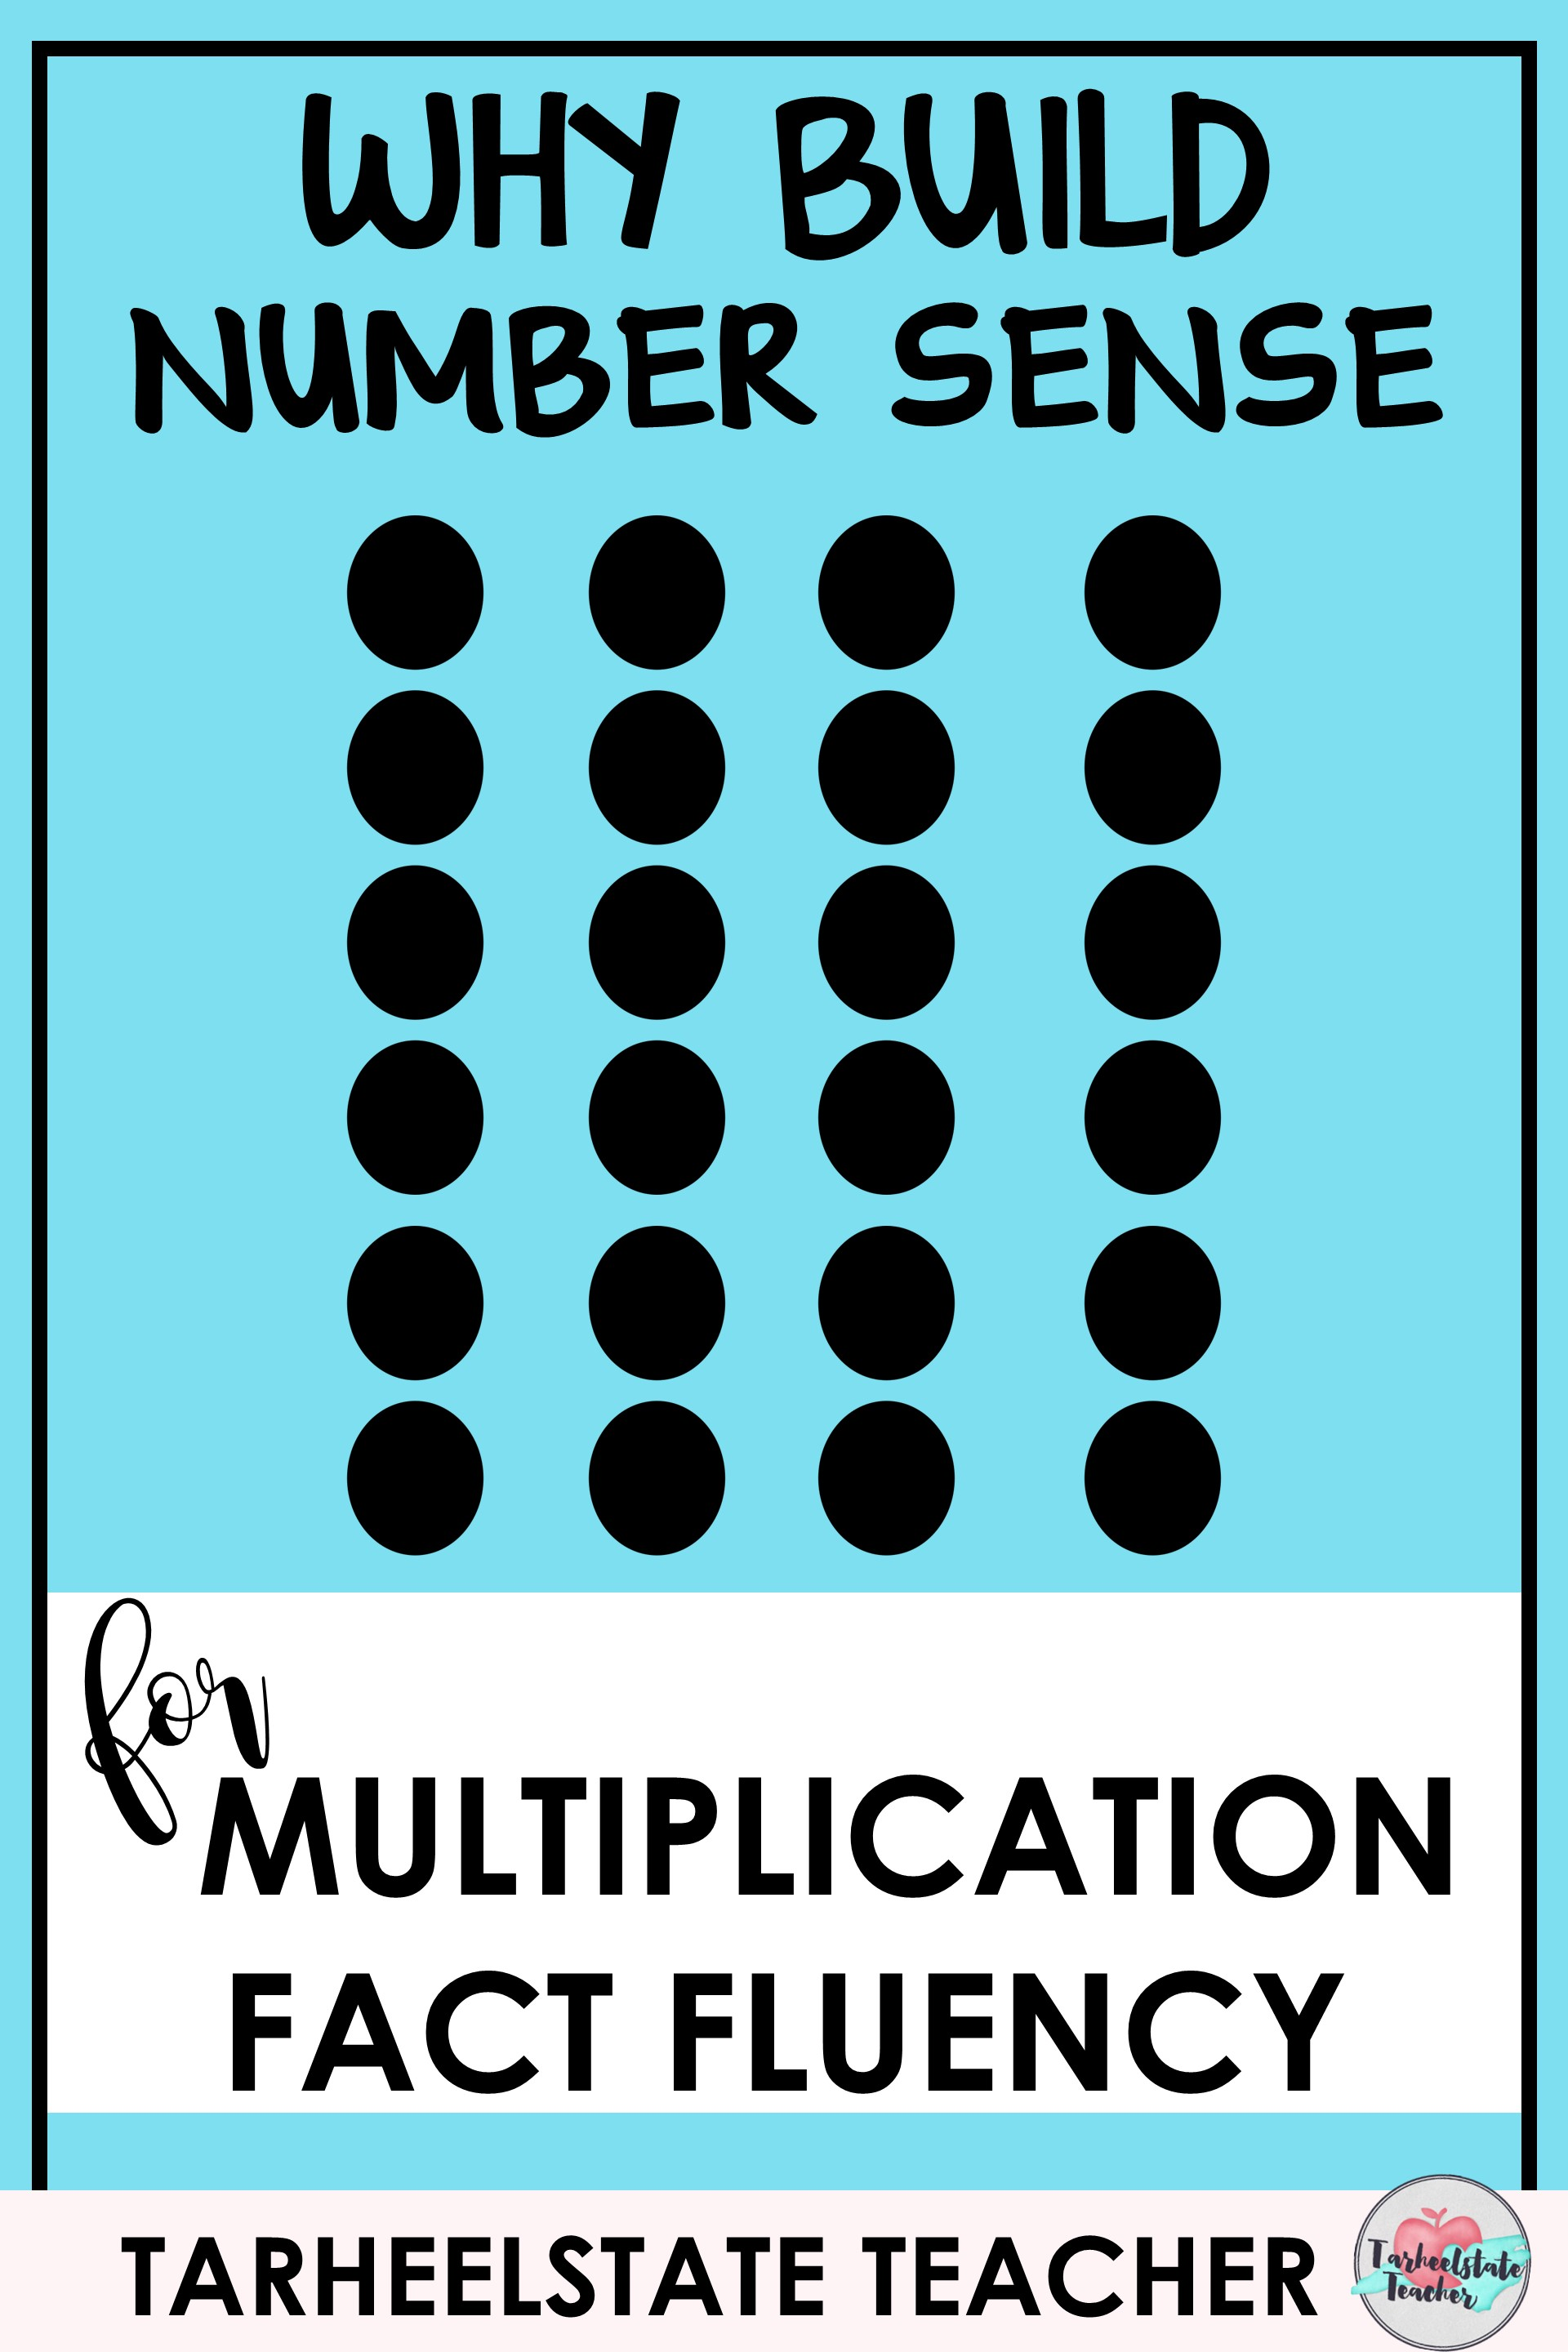 why build number sense for multiplication facts.JPG